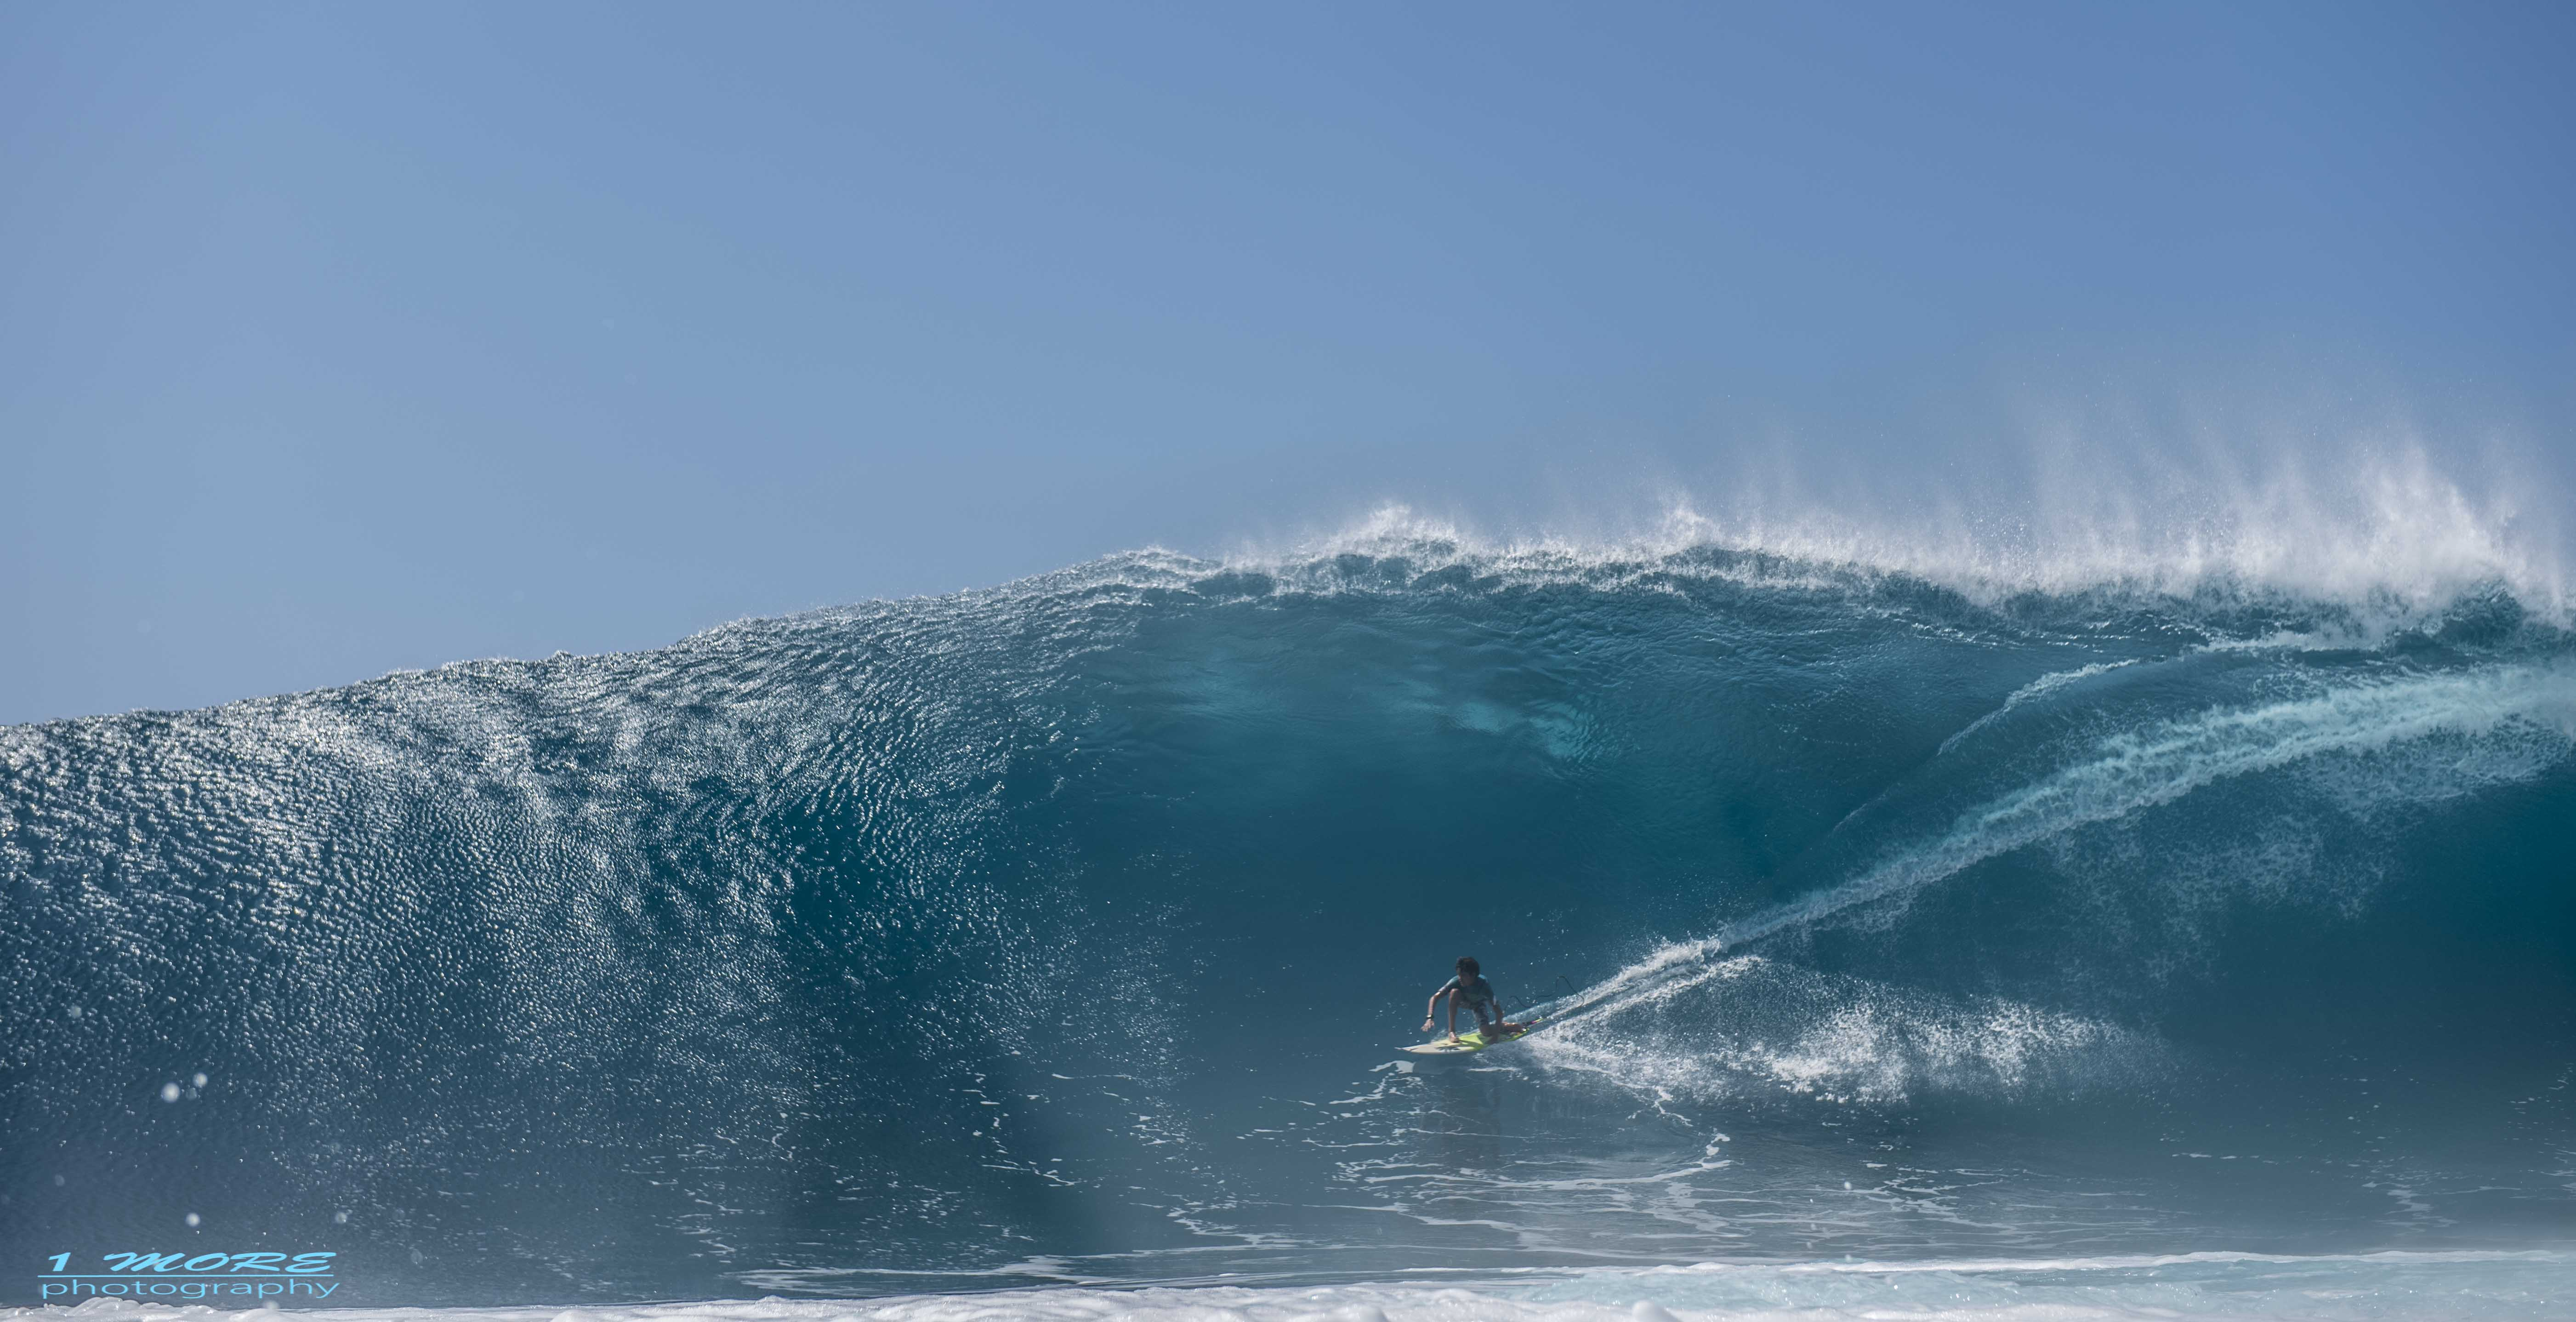 Jackson on a massive wave at Honolua Bay Photo: 1morephotography